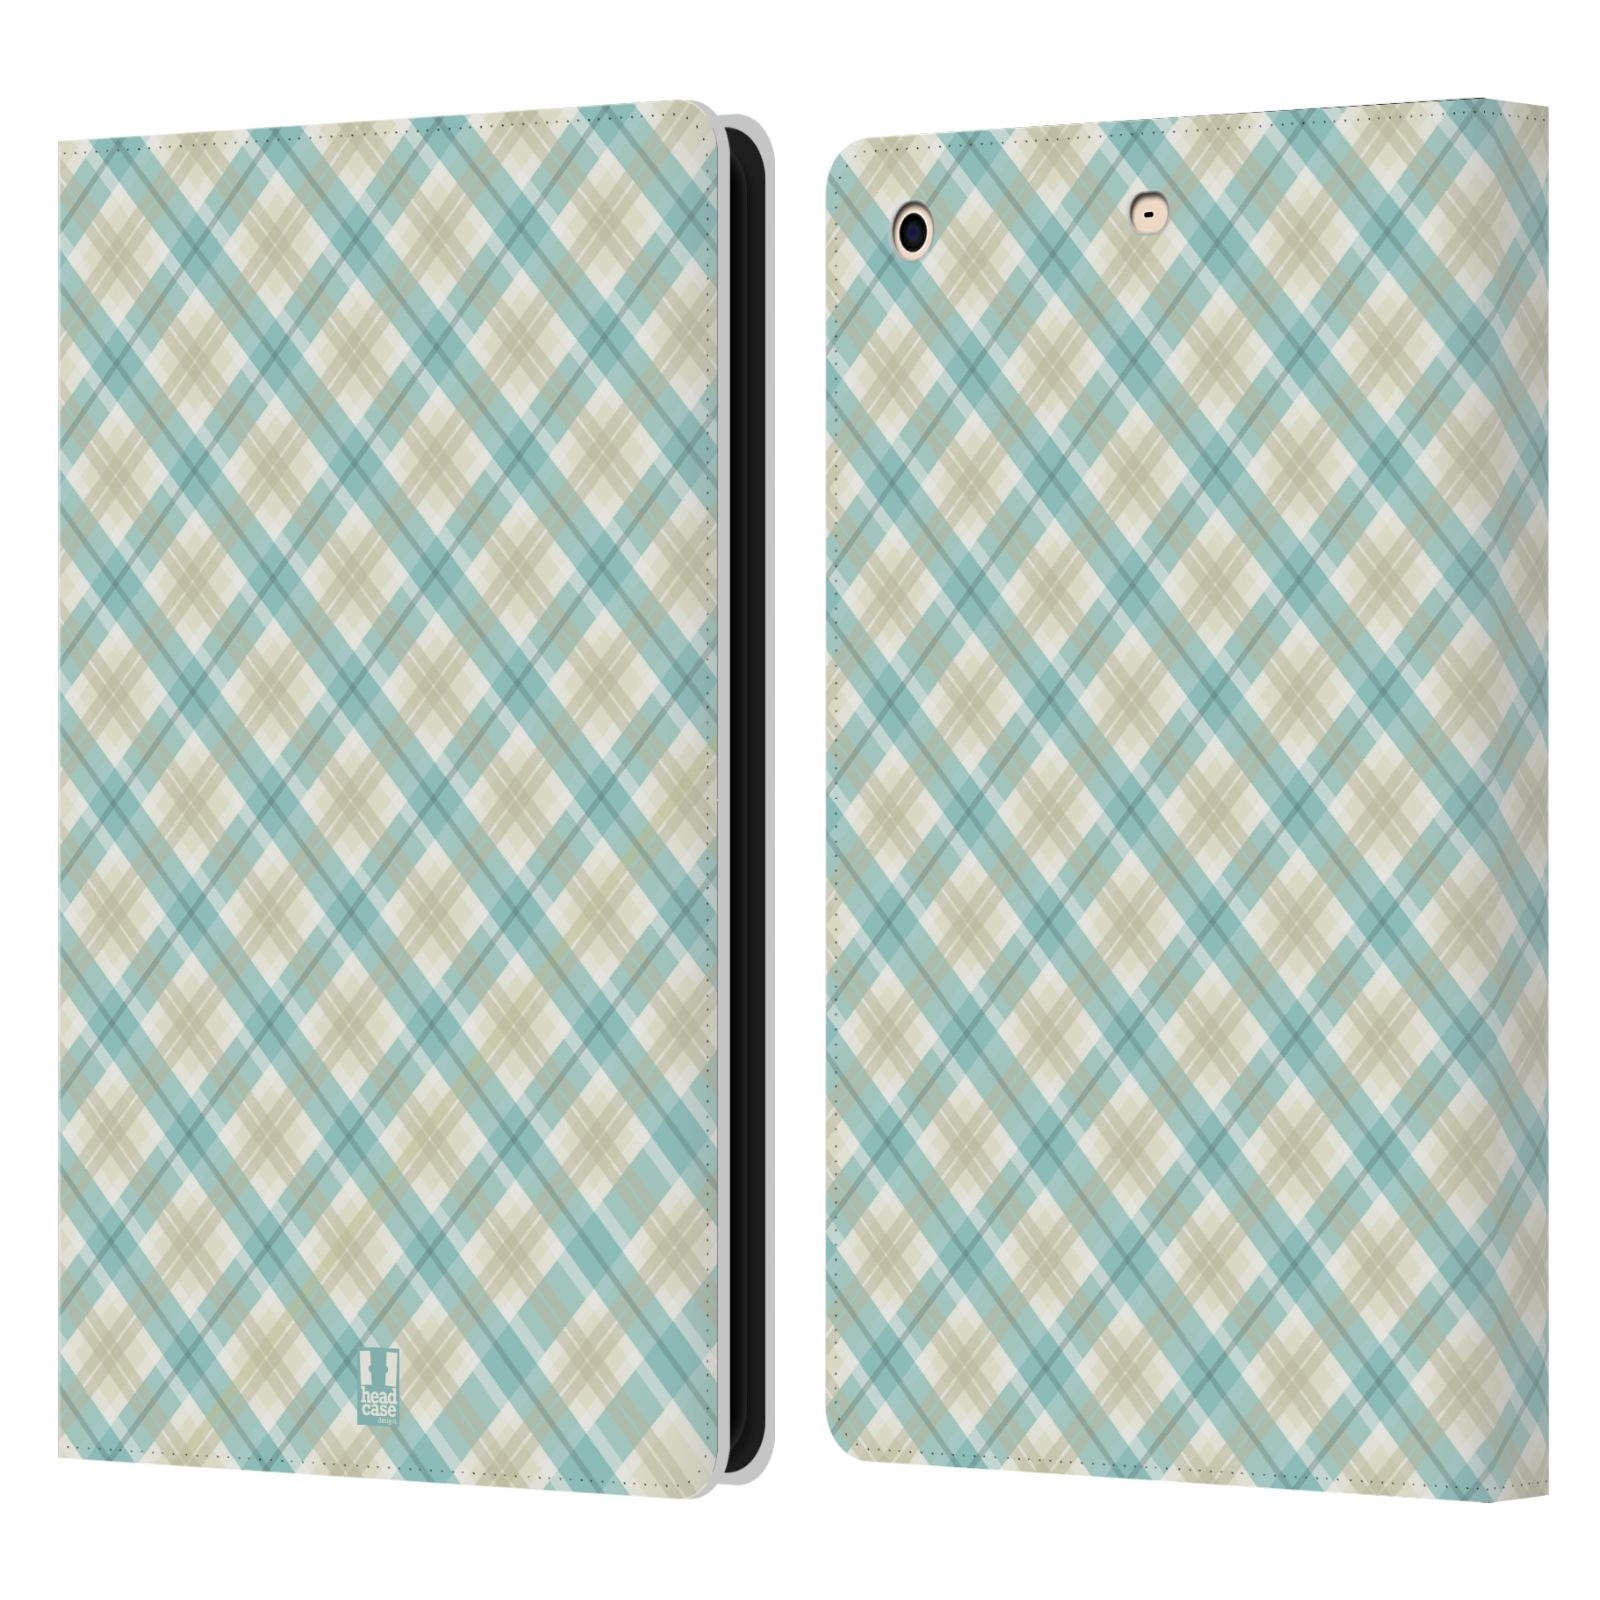 Checkered Cover Cookbook : Head case designs plaid leather book wallet cover for